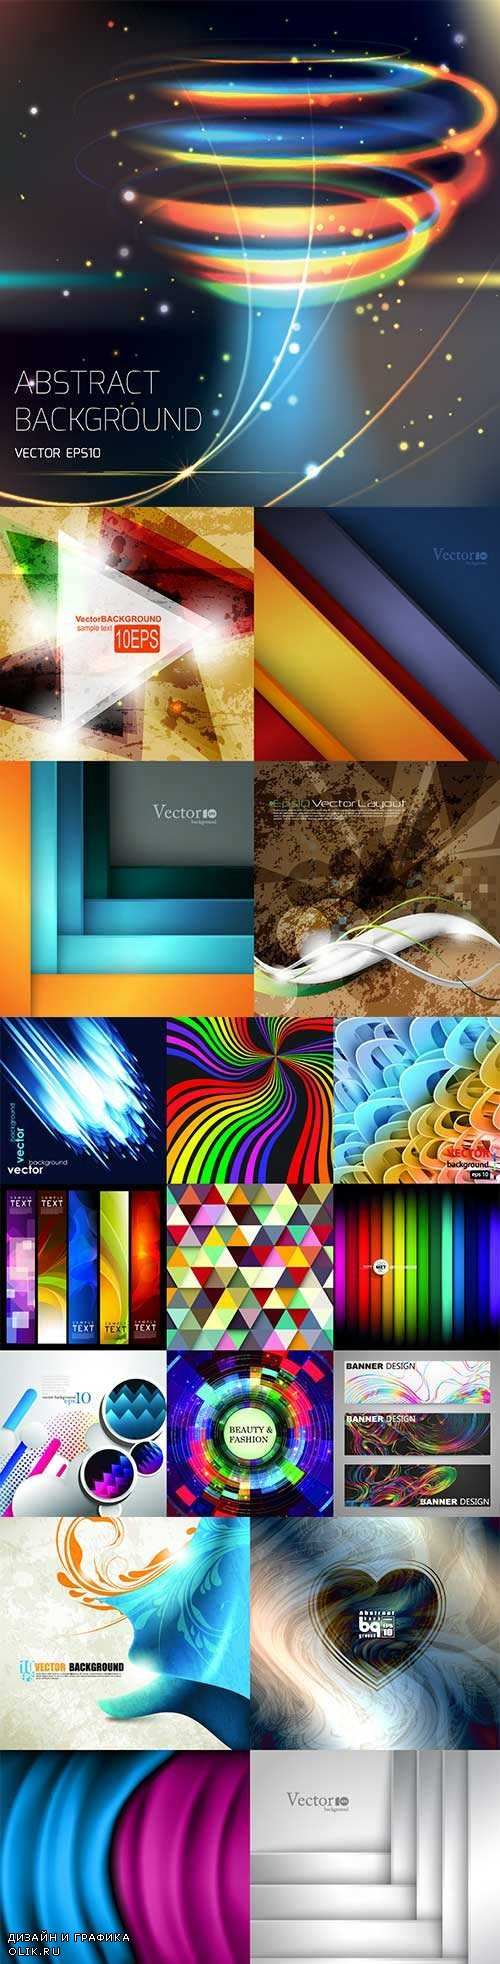 Bright colorful abstract backgrounds vector - 84